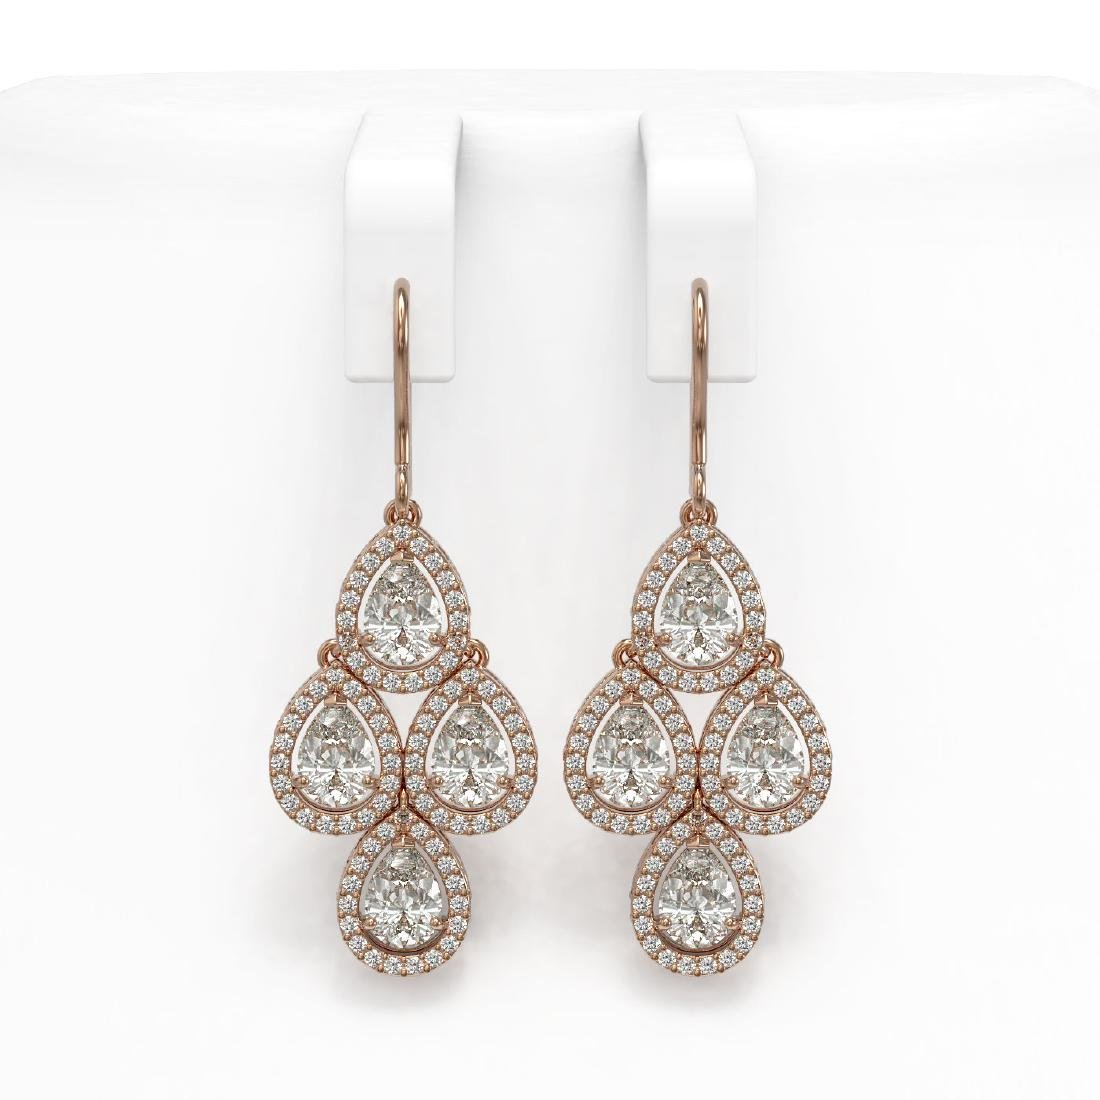 5.85 CTW Pear Diamond Designer Earrings 18K Rose Gold